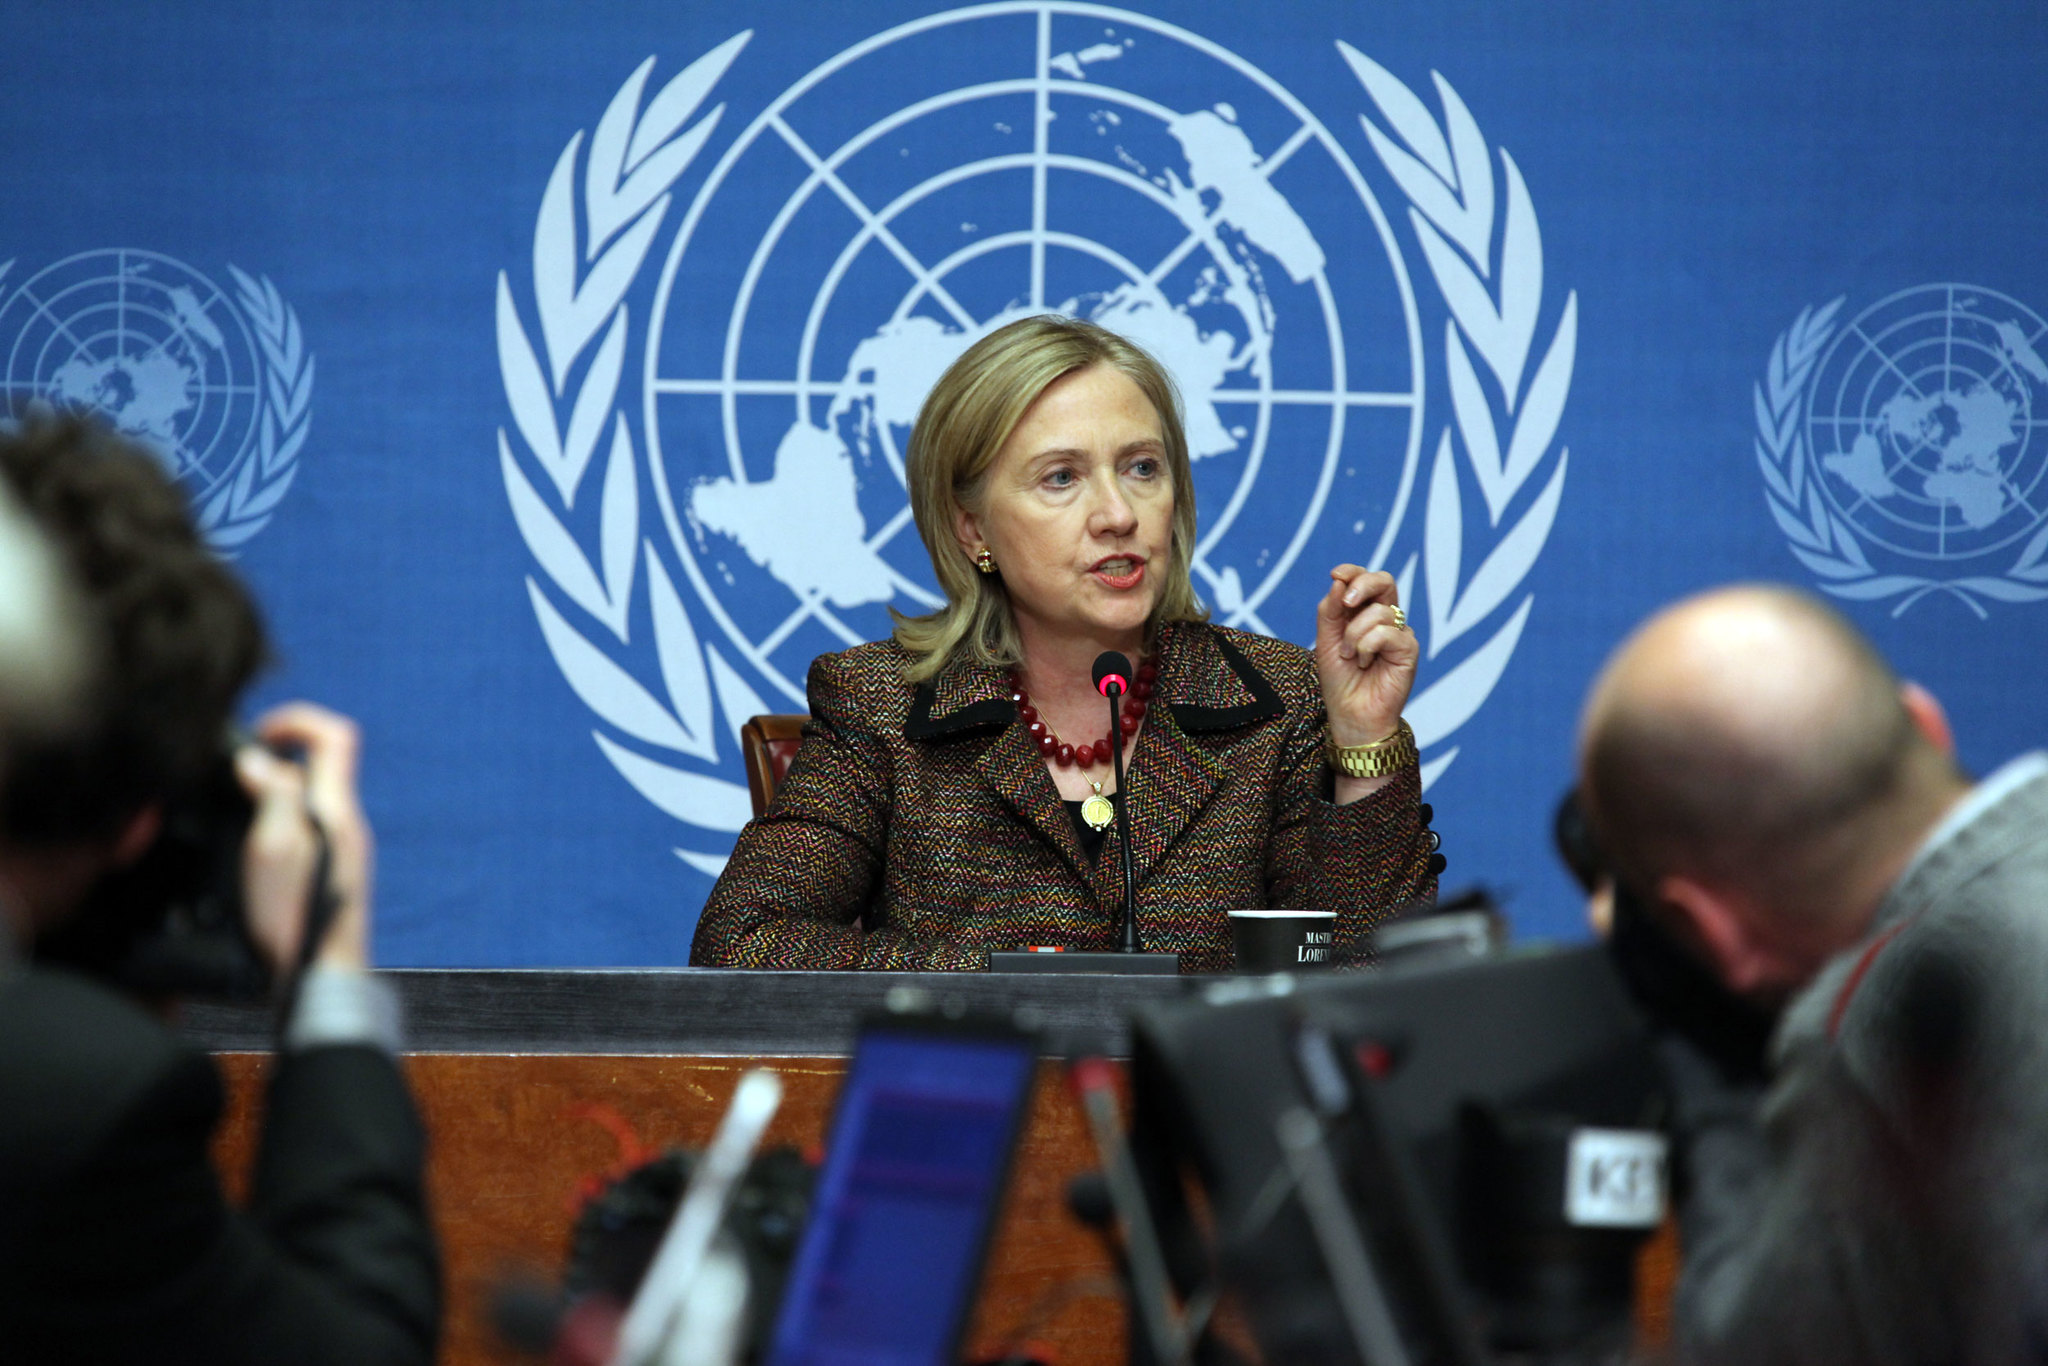 Secretary Clinton speaks at a press conference at the United Nations Office at Geneva, Switzerland, February 28, 2011. The Secretary took questions from the press after addressing the Human Rights Council and the Conference on Disarmament.